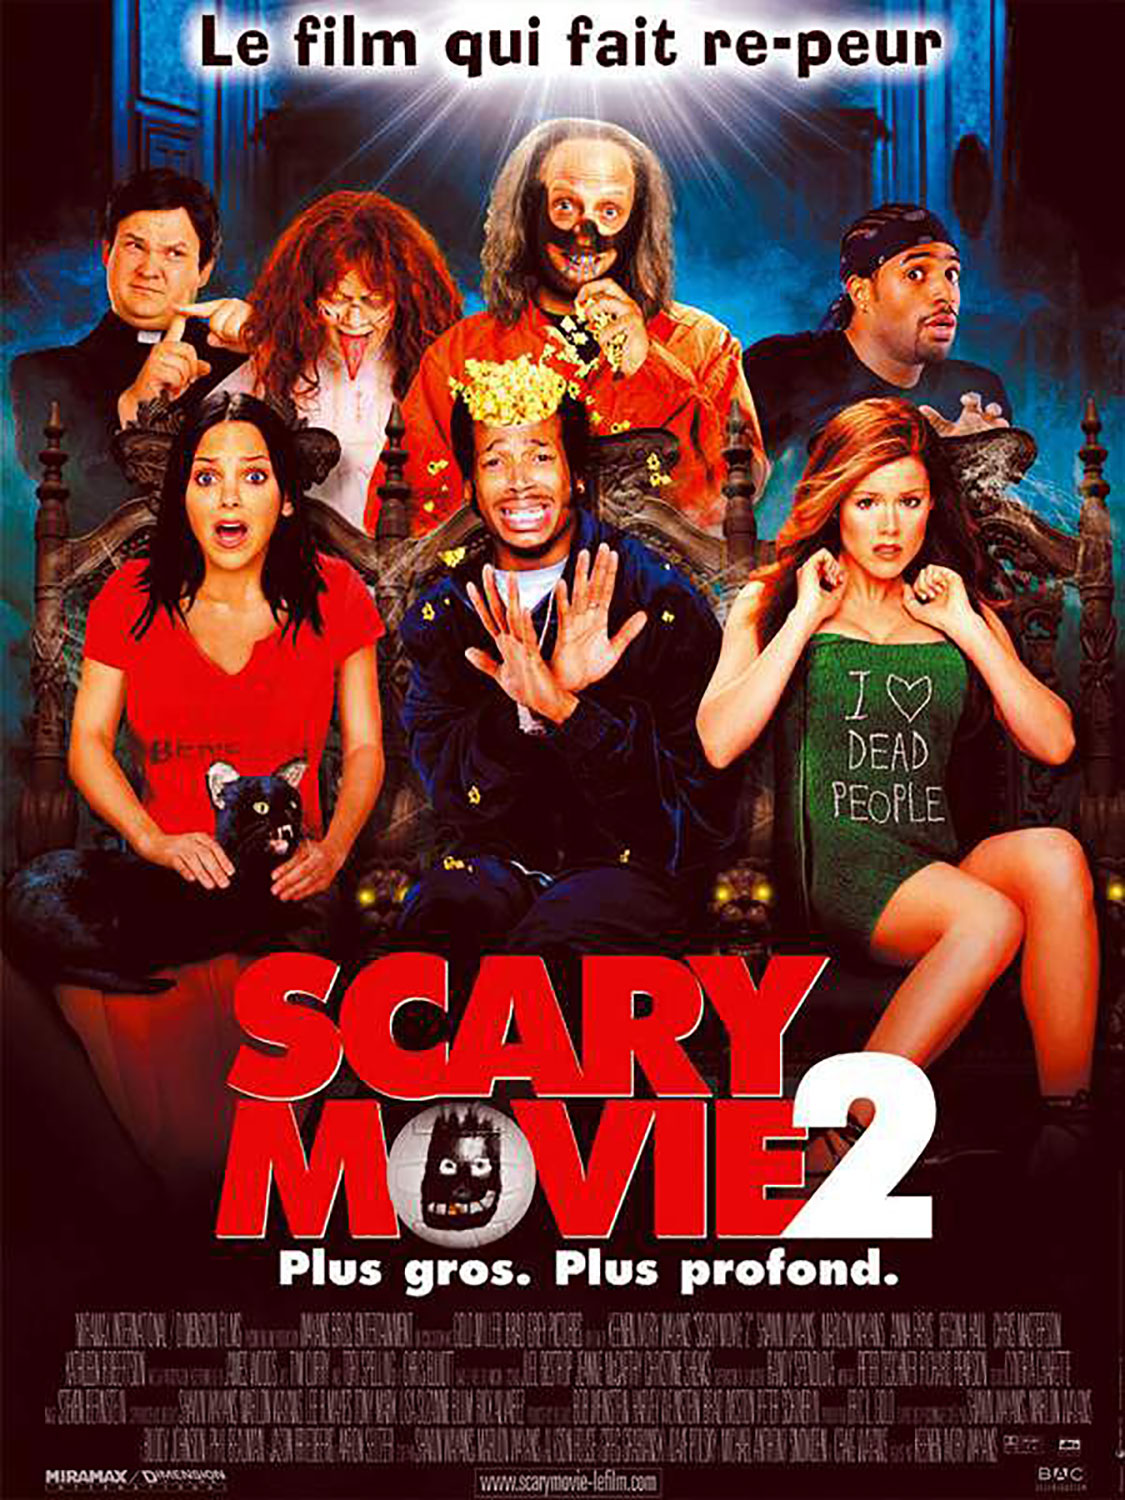 Affiche Poster scary movie 2 disney dimension